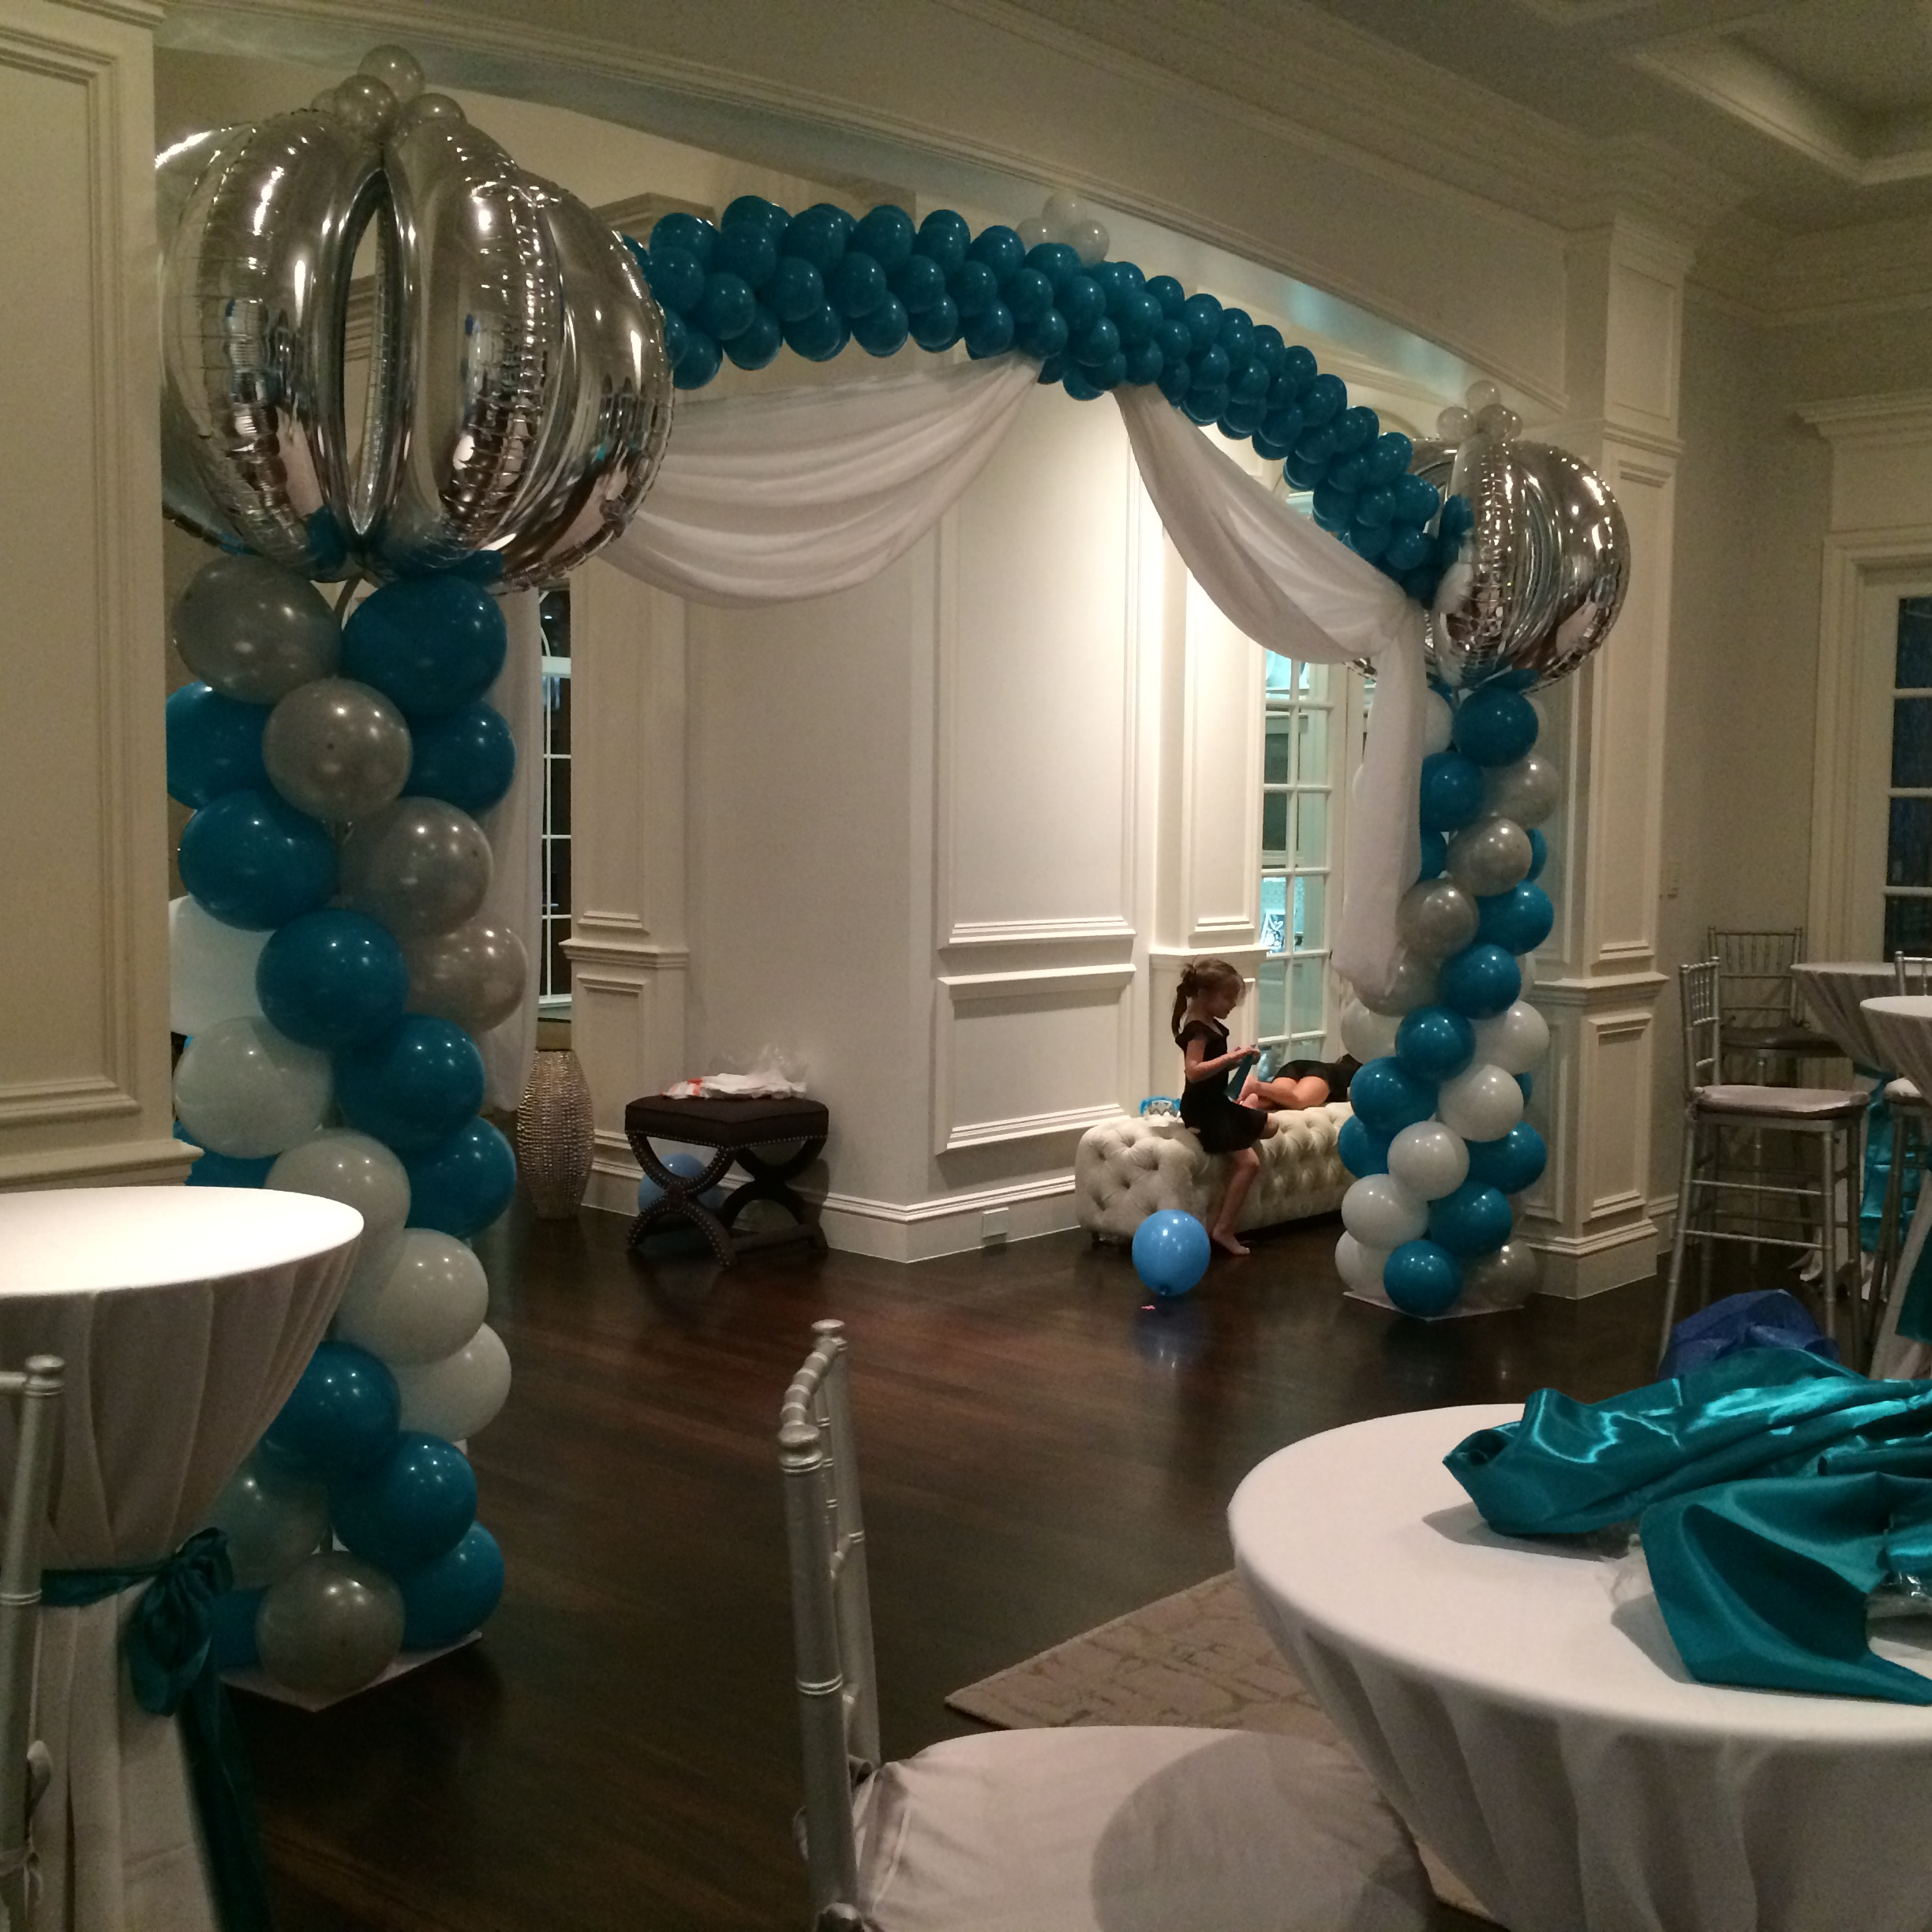 Winter Wonderland balloon arch